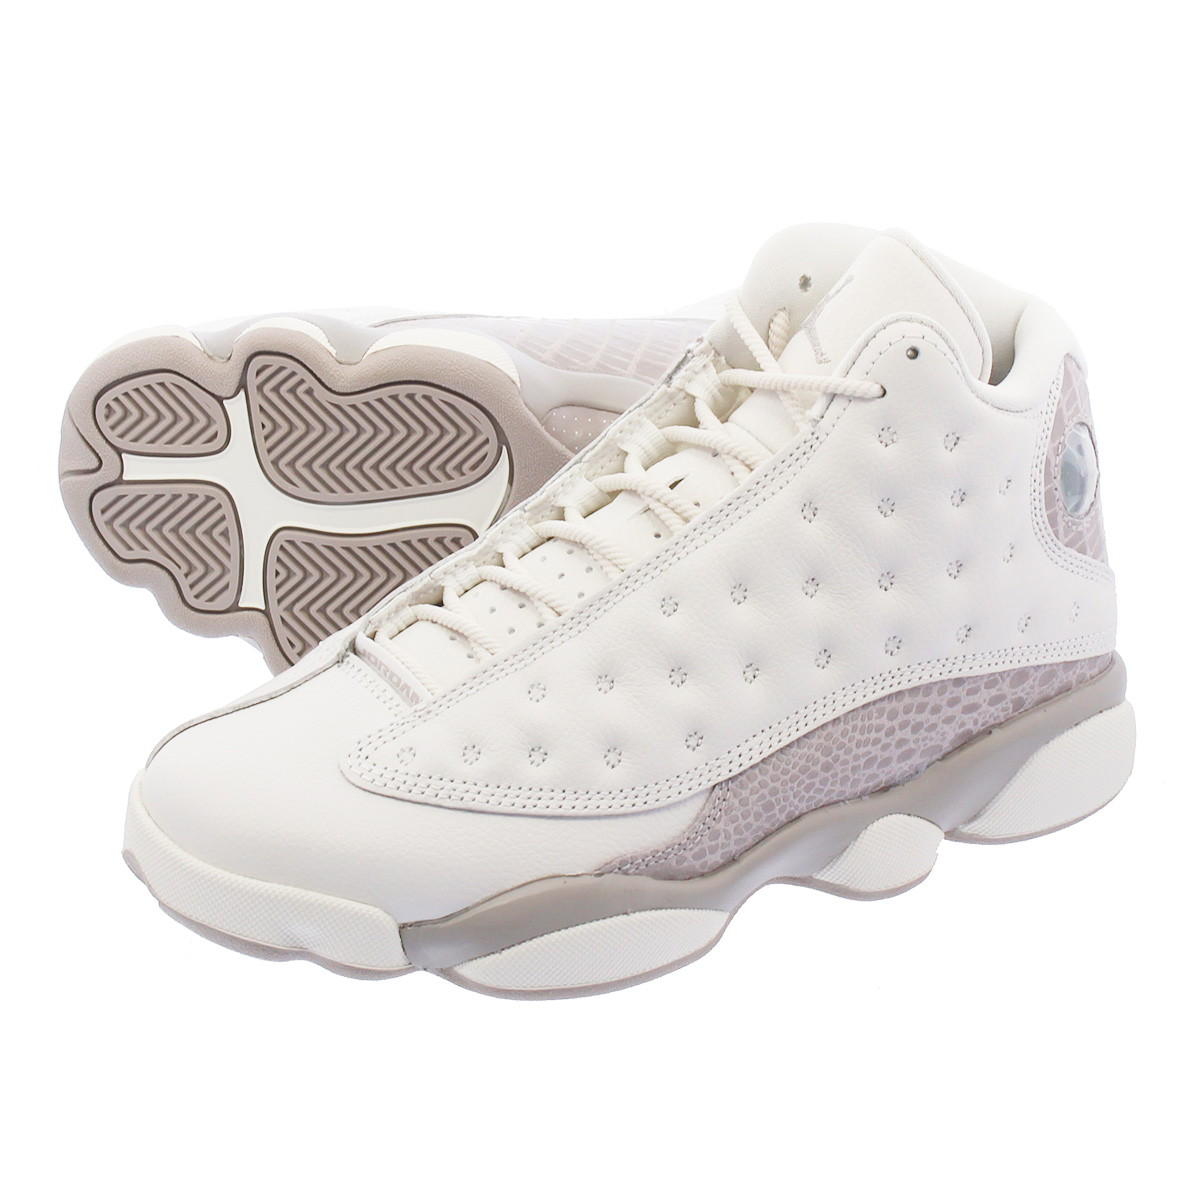 deef4cb5eead NIKE WMNS AIR JORDAN 13 RETRO Nike women Air Jordan 13 nostalgic  PHANTOM MOON PARTICLE aq1757-004